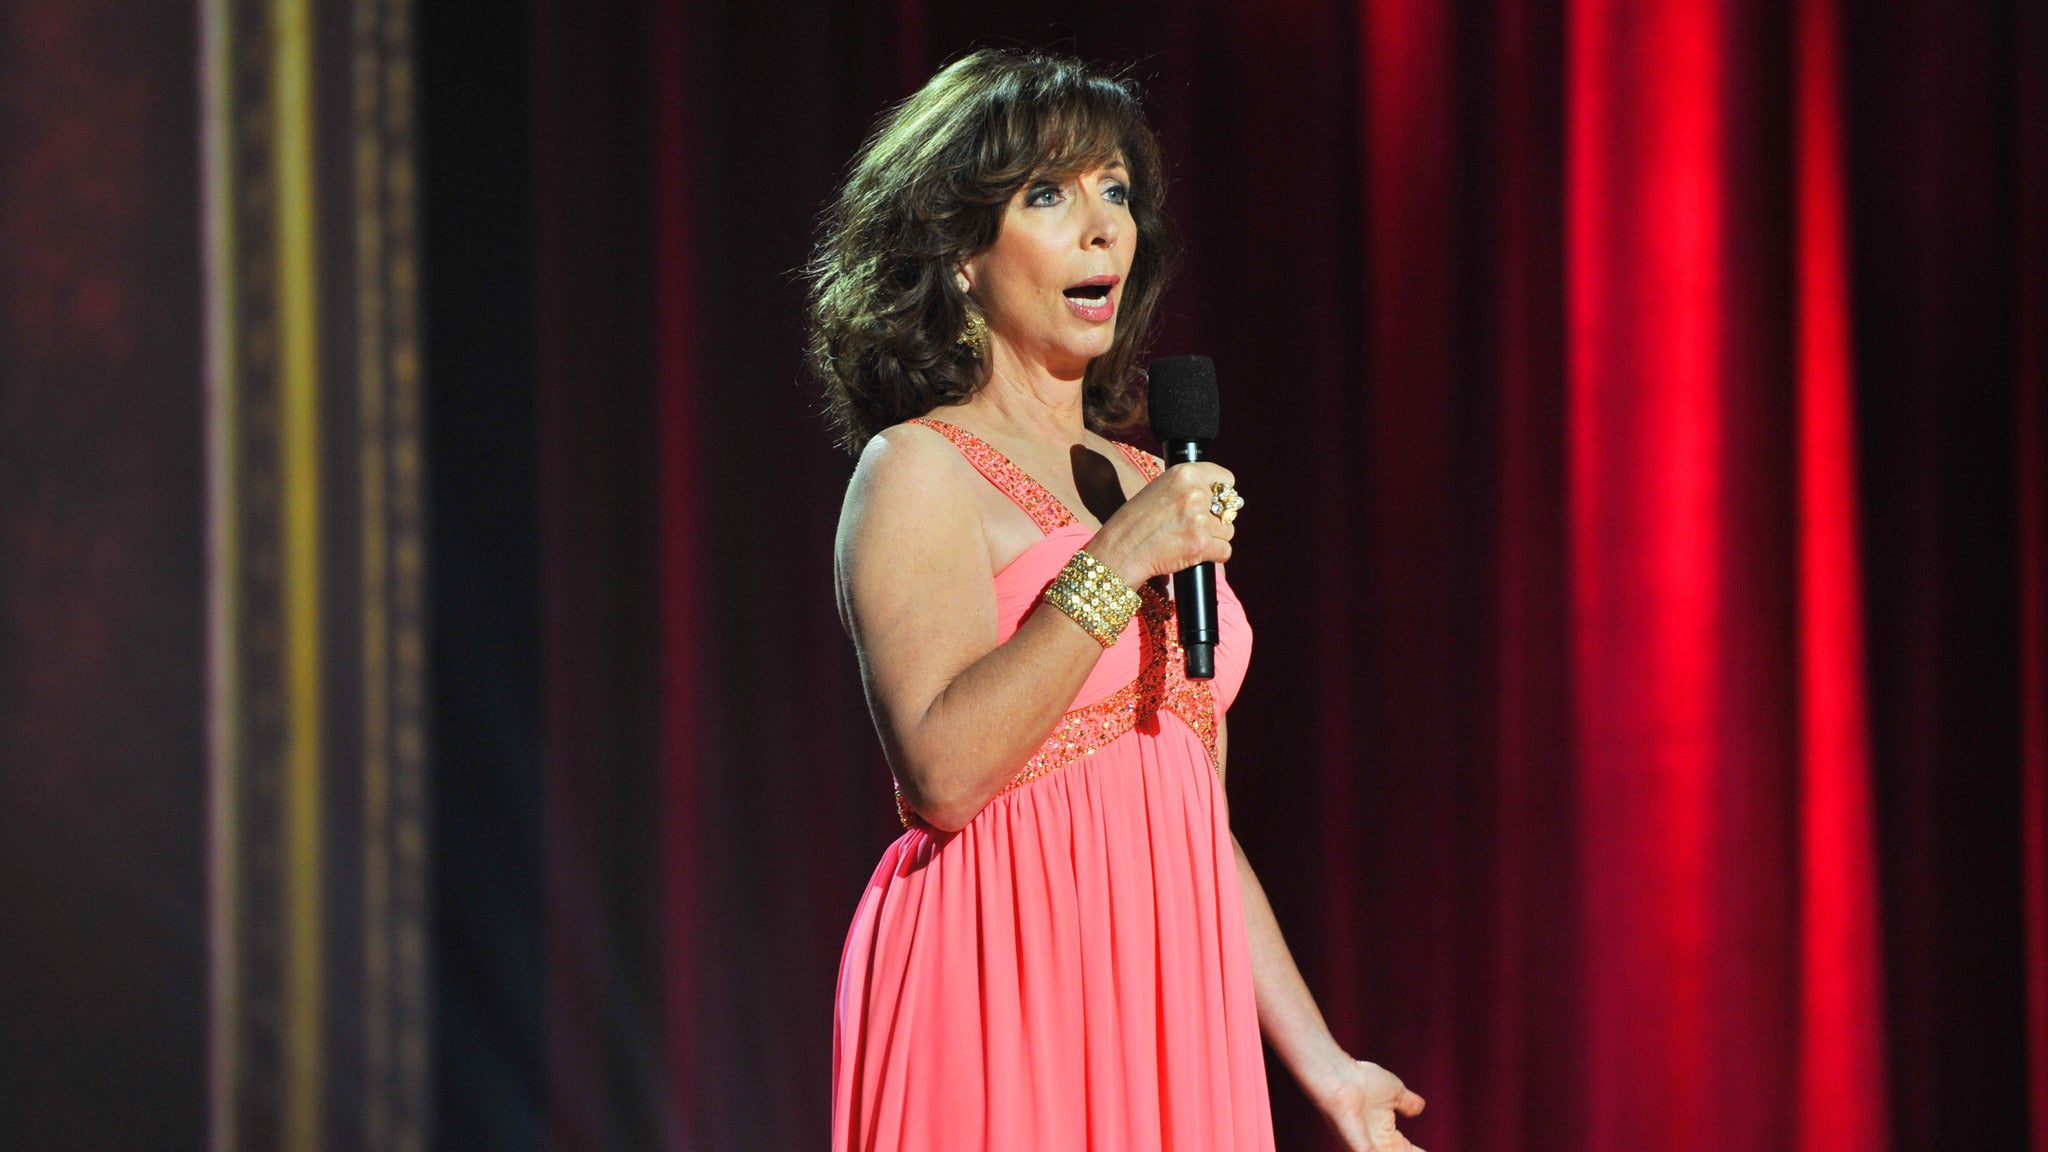 Funniest Housewives of Oc FT Rita Rudner at The Coach House